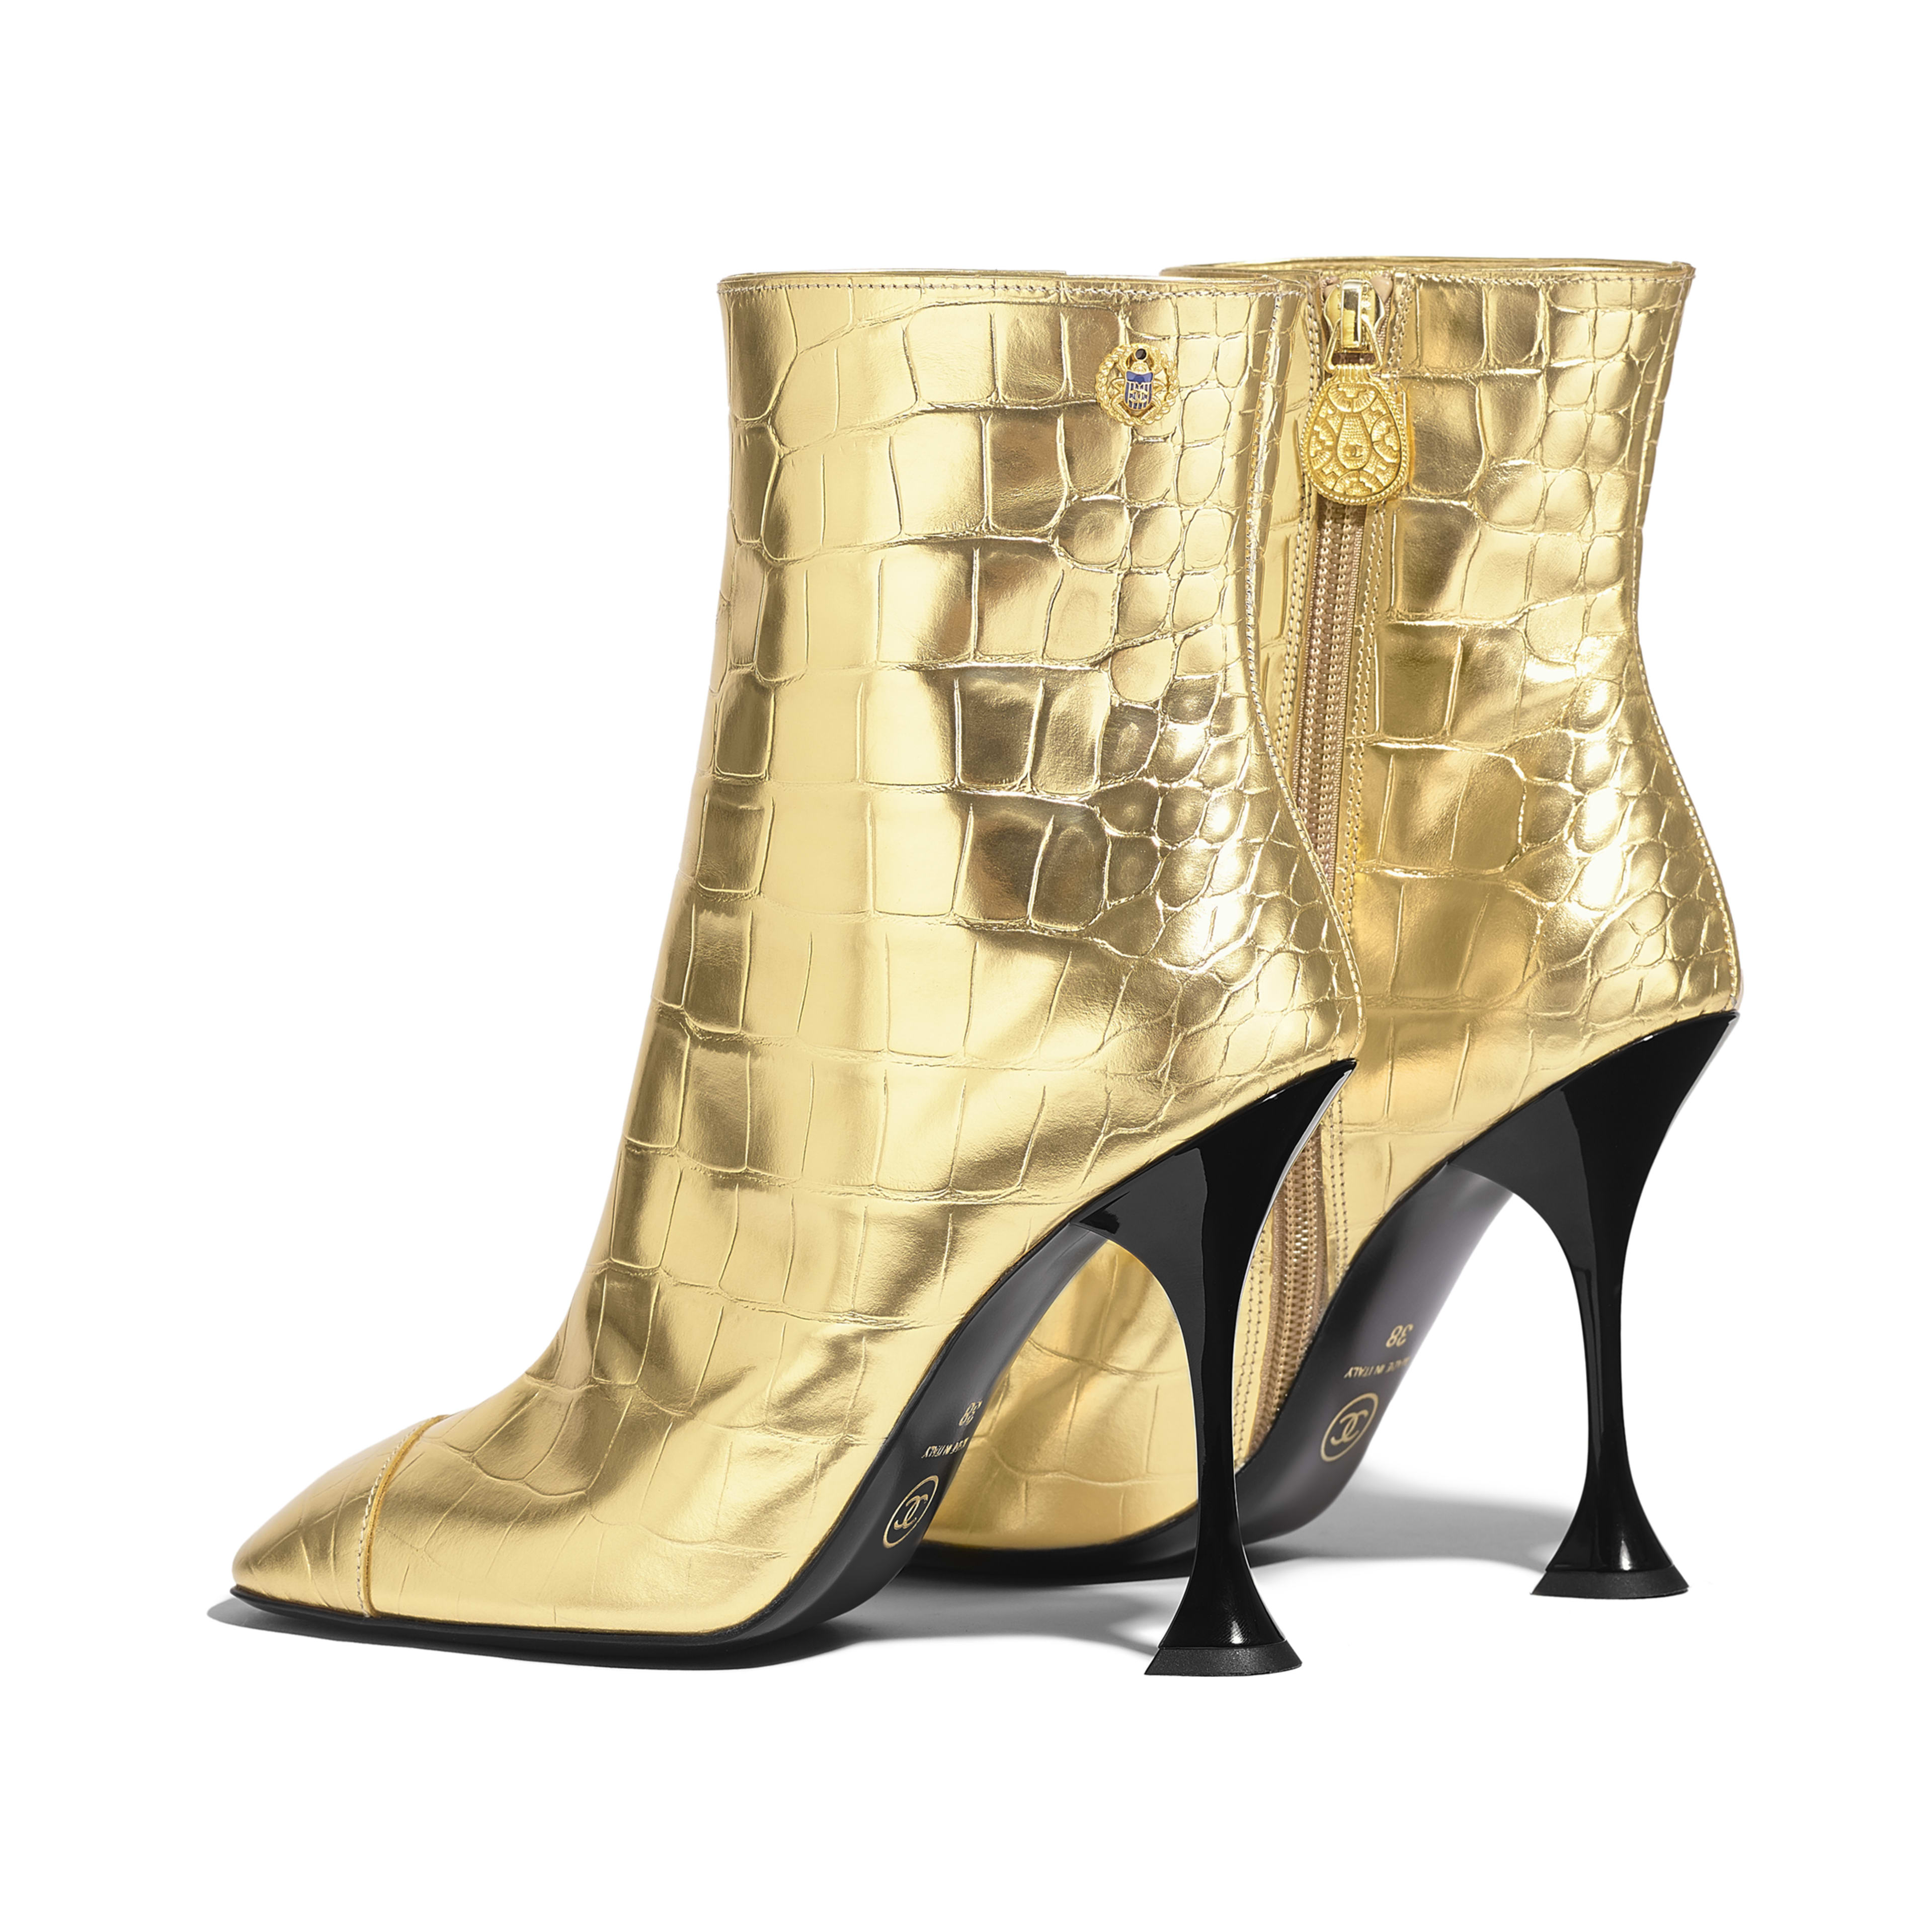 Ankle Boots - Gold - Crocodile Embossed Metallic Calfskin - Other view - see full sized version